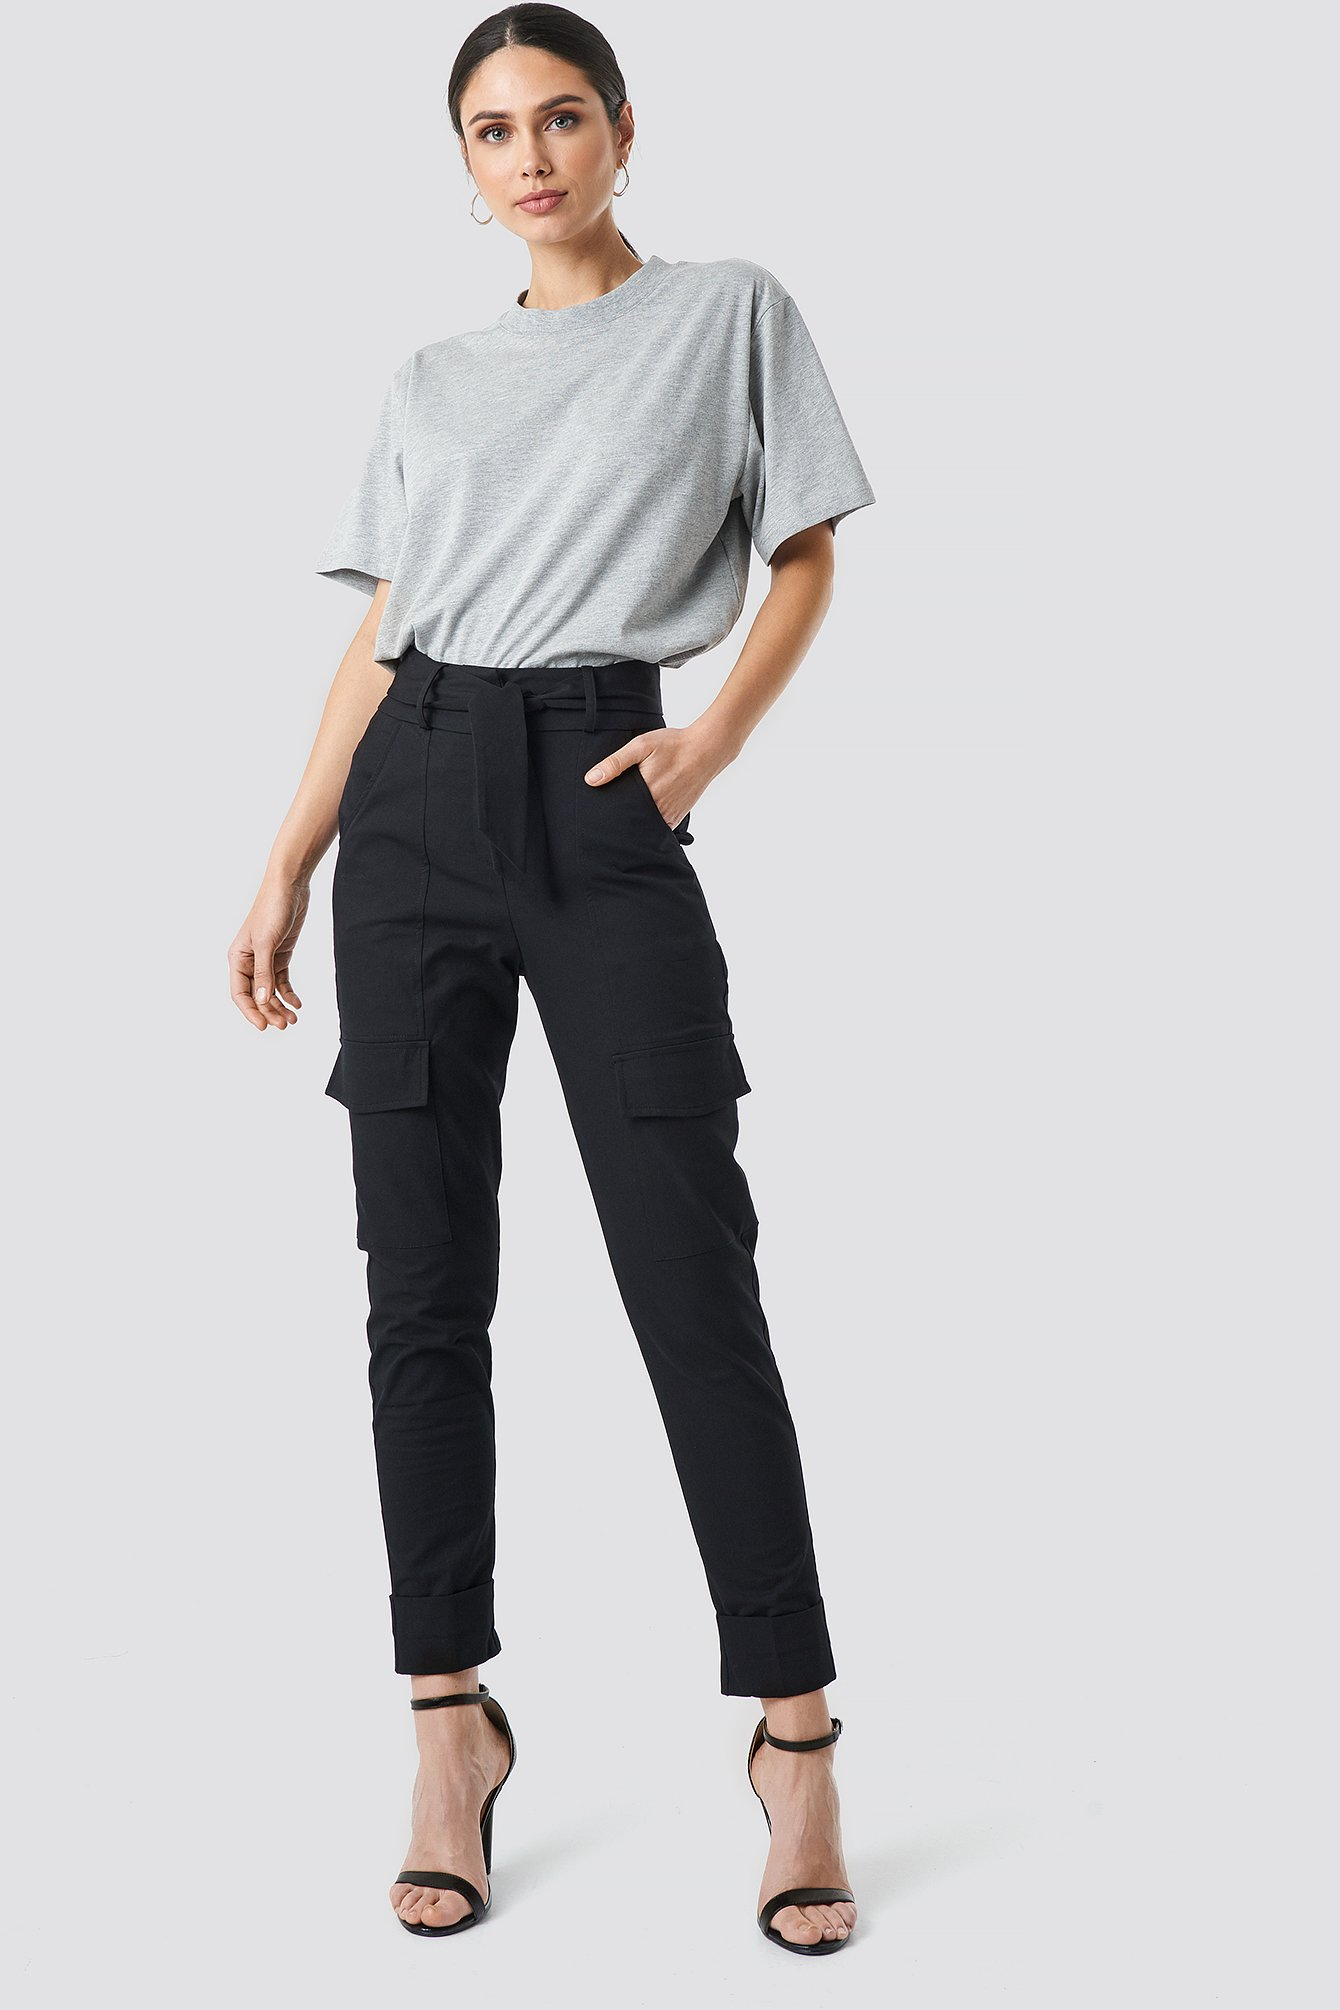 na-kd trend -  Tie Waist Patch Pocket Pants - Black